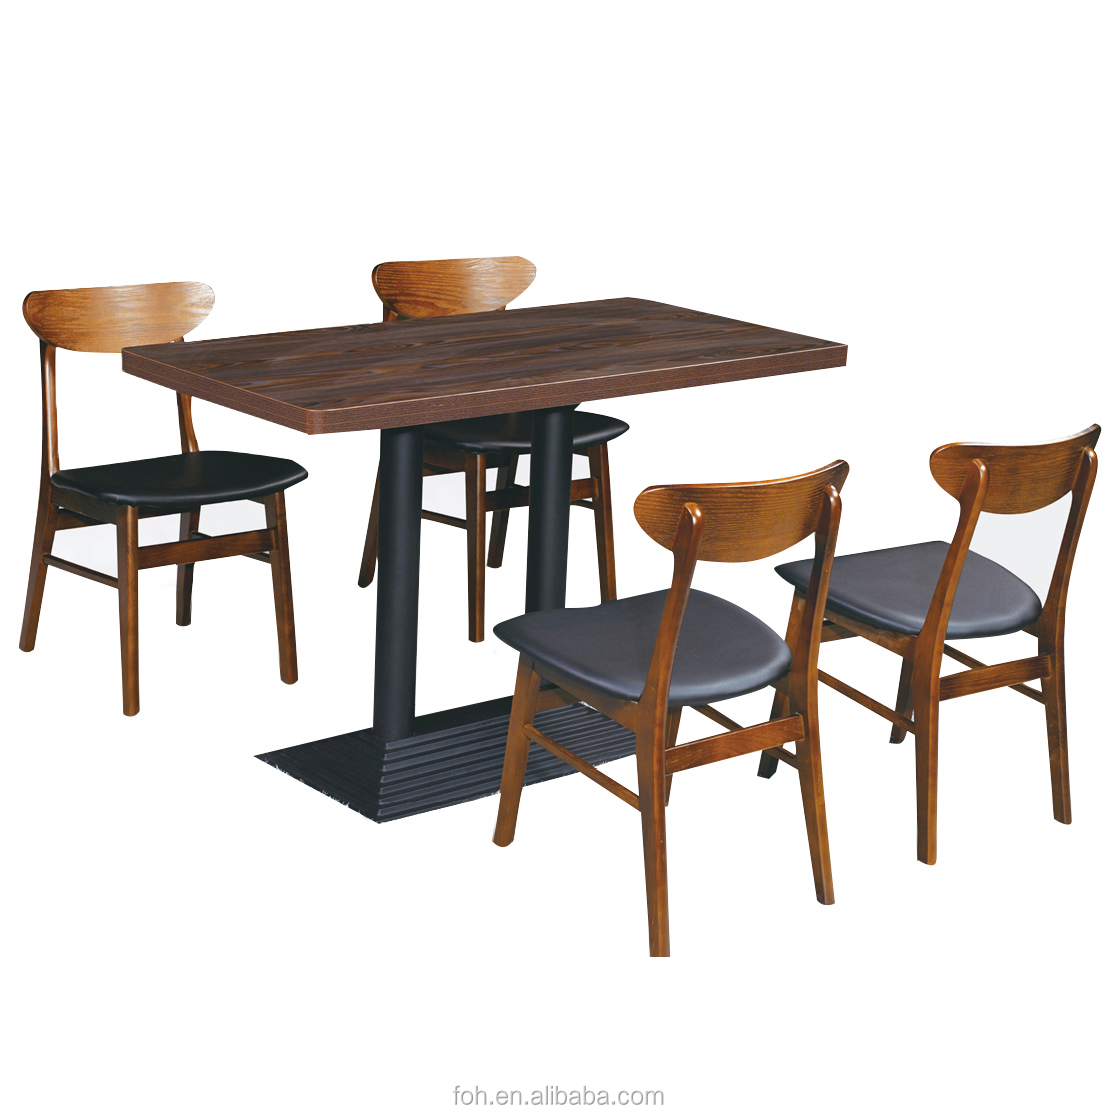 Restau U Restaurant Professionnel Design Table Et Chaise De Restaurant Modern Buy Chaise Restaurant Modern Restaurant Table Et Chaise Chaise